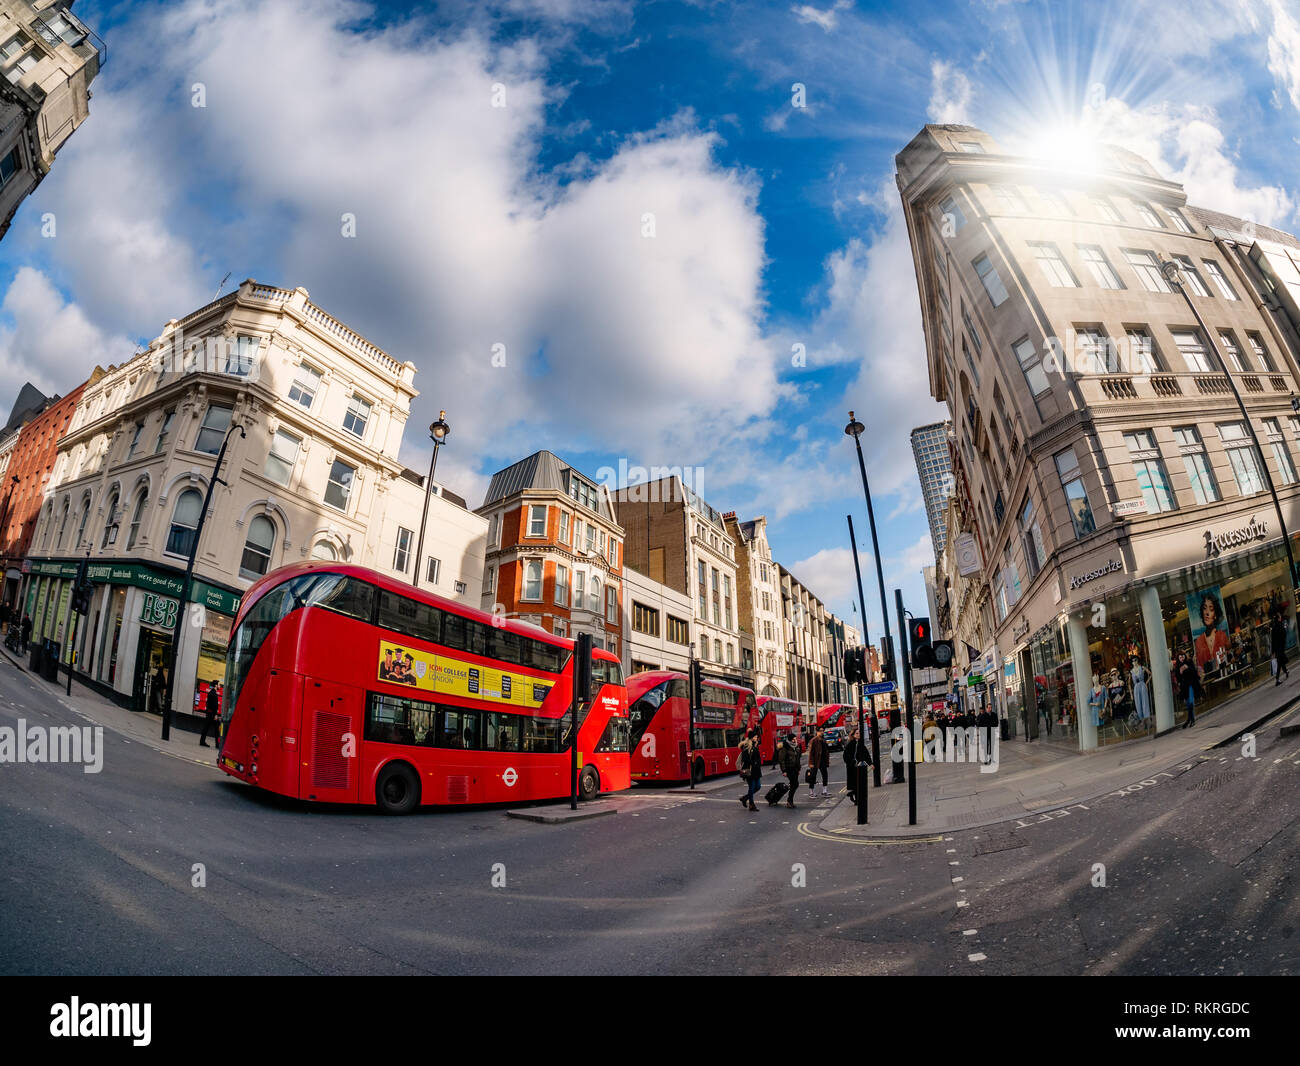 London, UK - February 11, 2019: British architecture on Oxford street in the main center area of London, with traditional red buses transporting touri - Stock Image